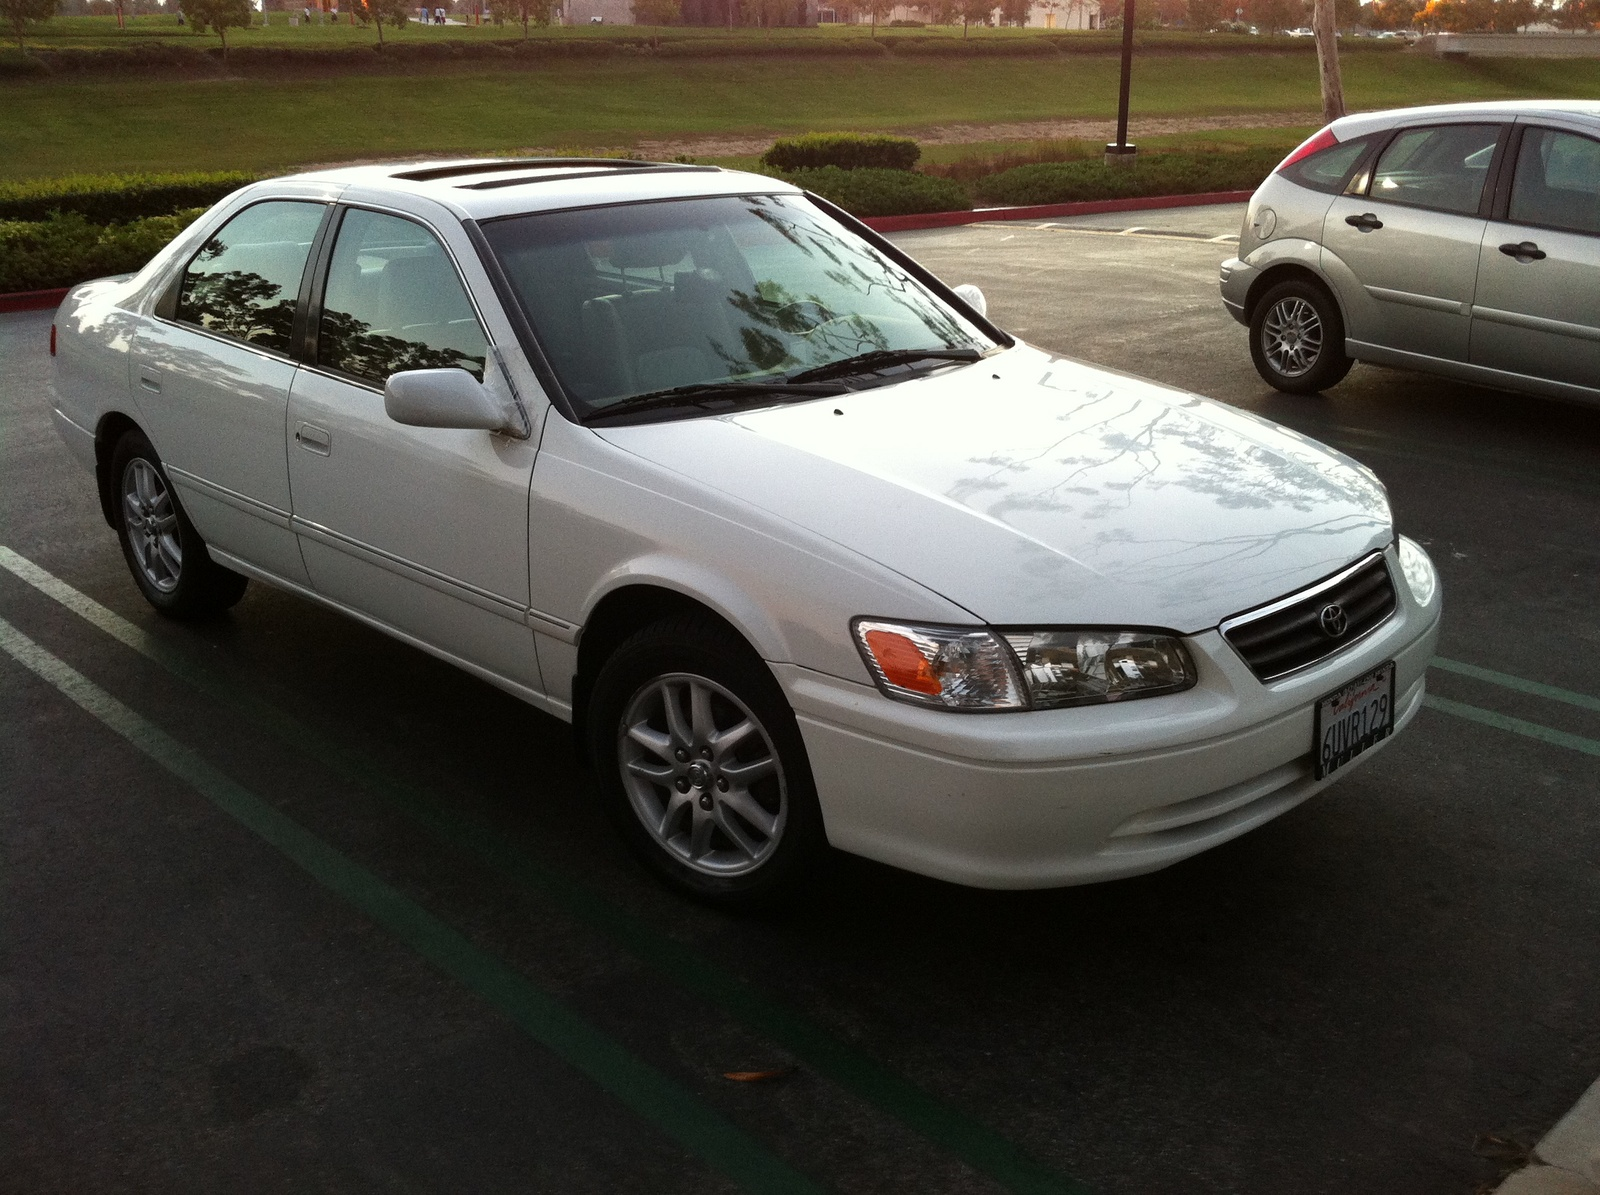 Picture of 2001 Toyota Camry XLE V6, exterior | 1600 x 1195 jpeg 672kB